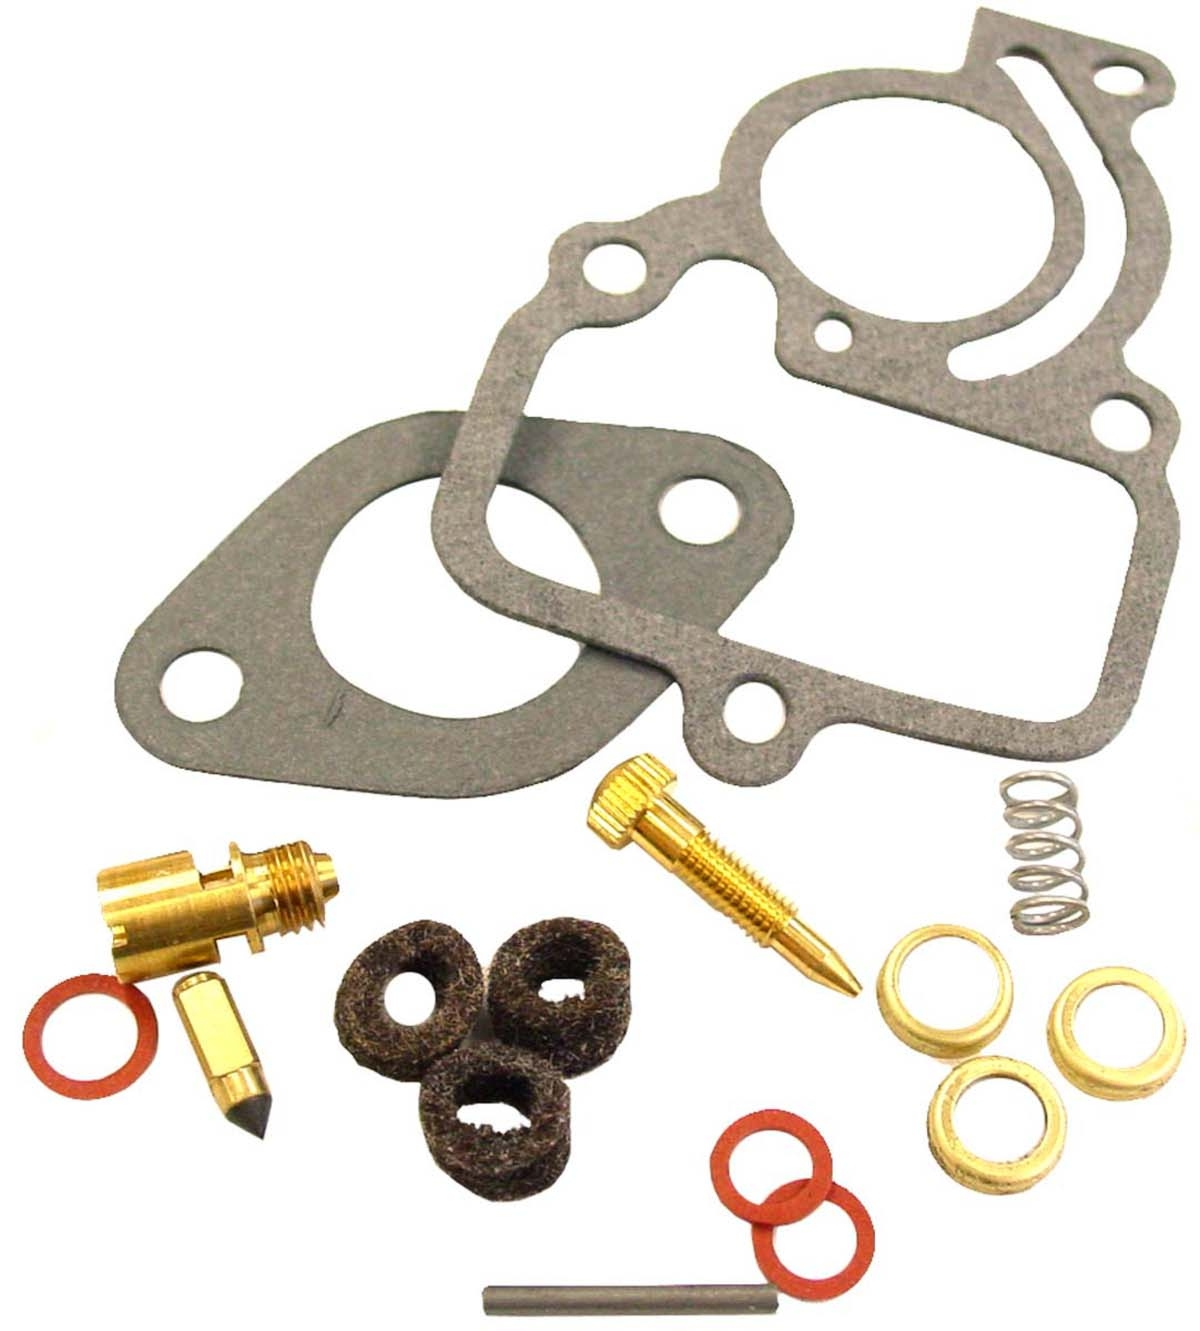 Carb rebuild kit for Cub with carburetor 251234R94, or 364579R91